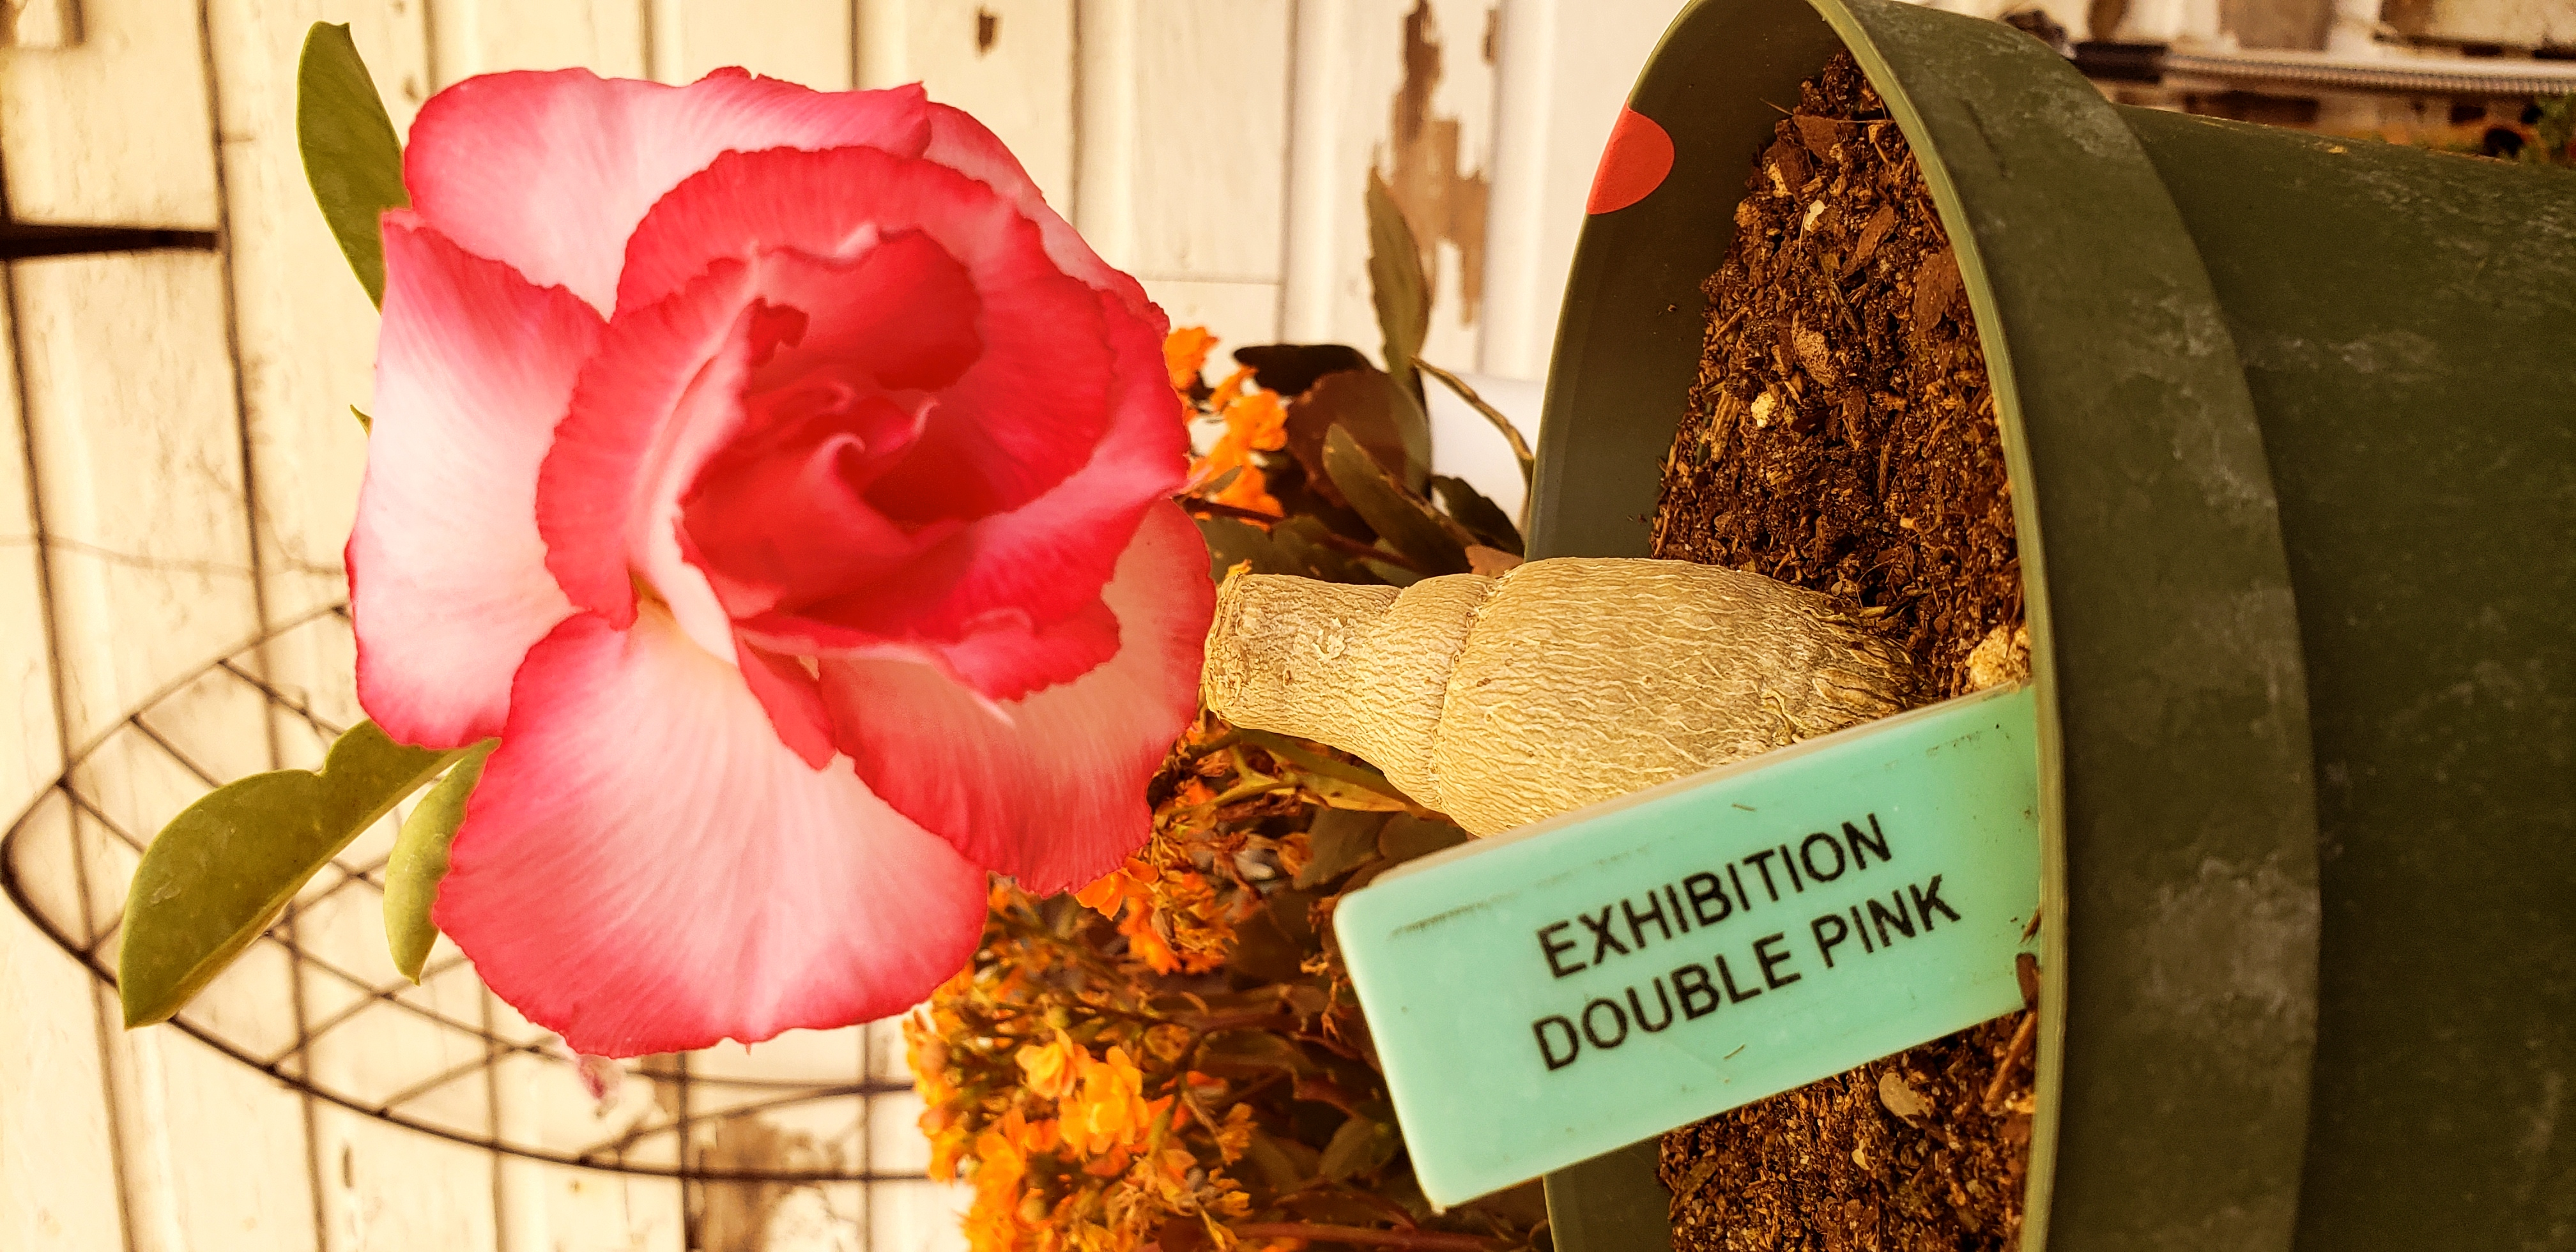 Exhifition Double Pink Desert Rose